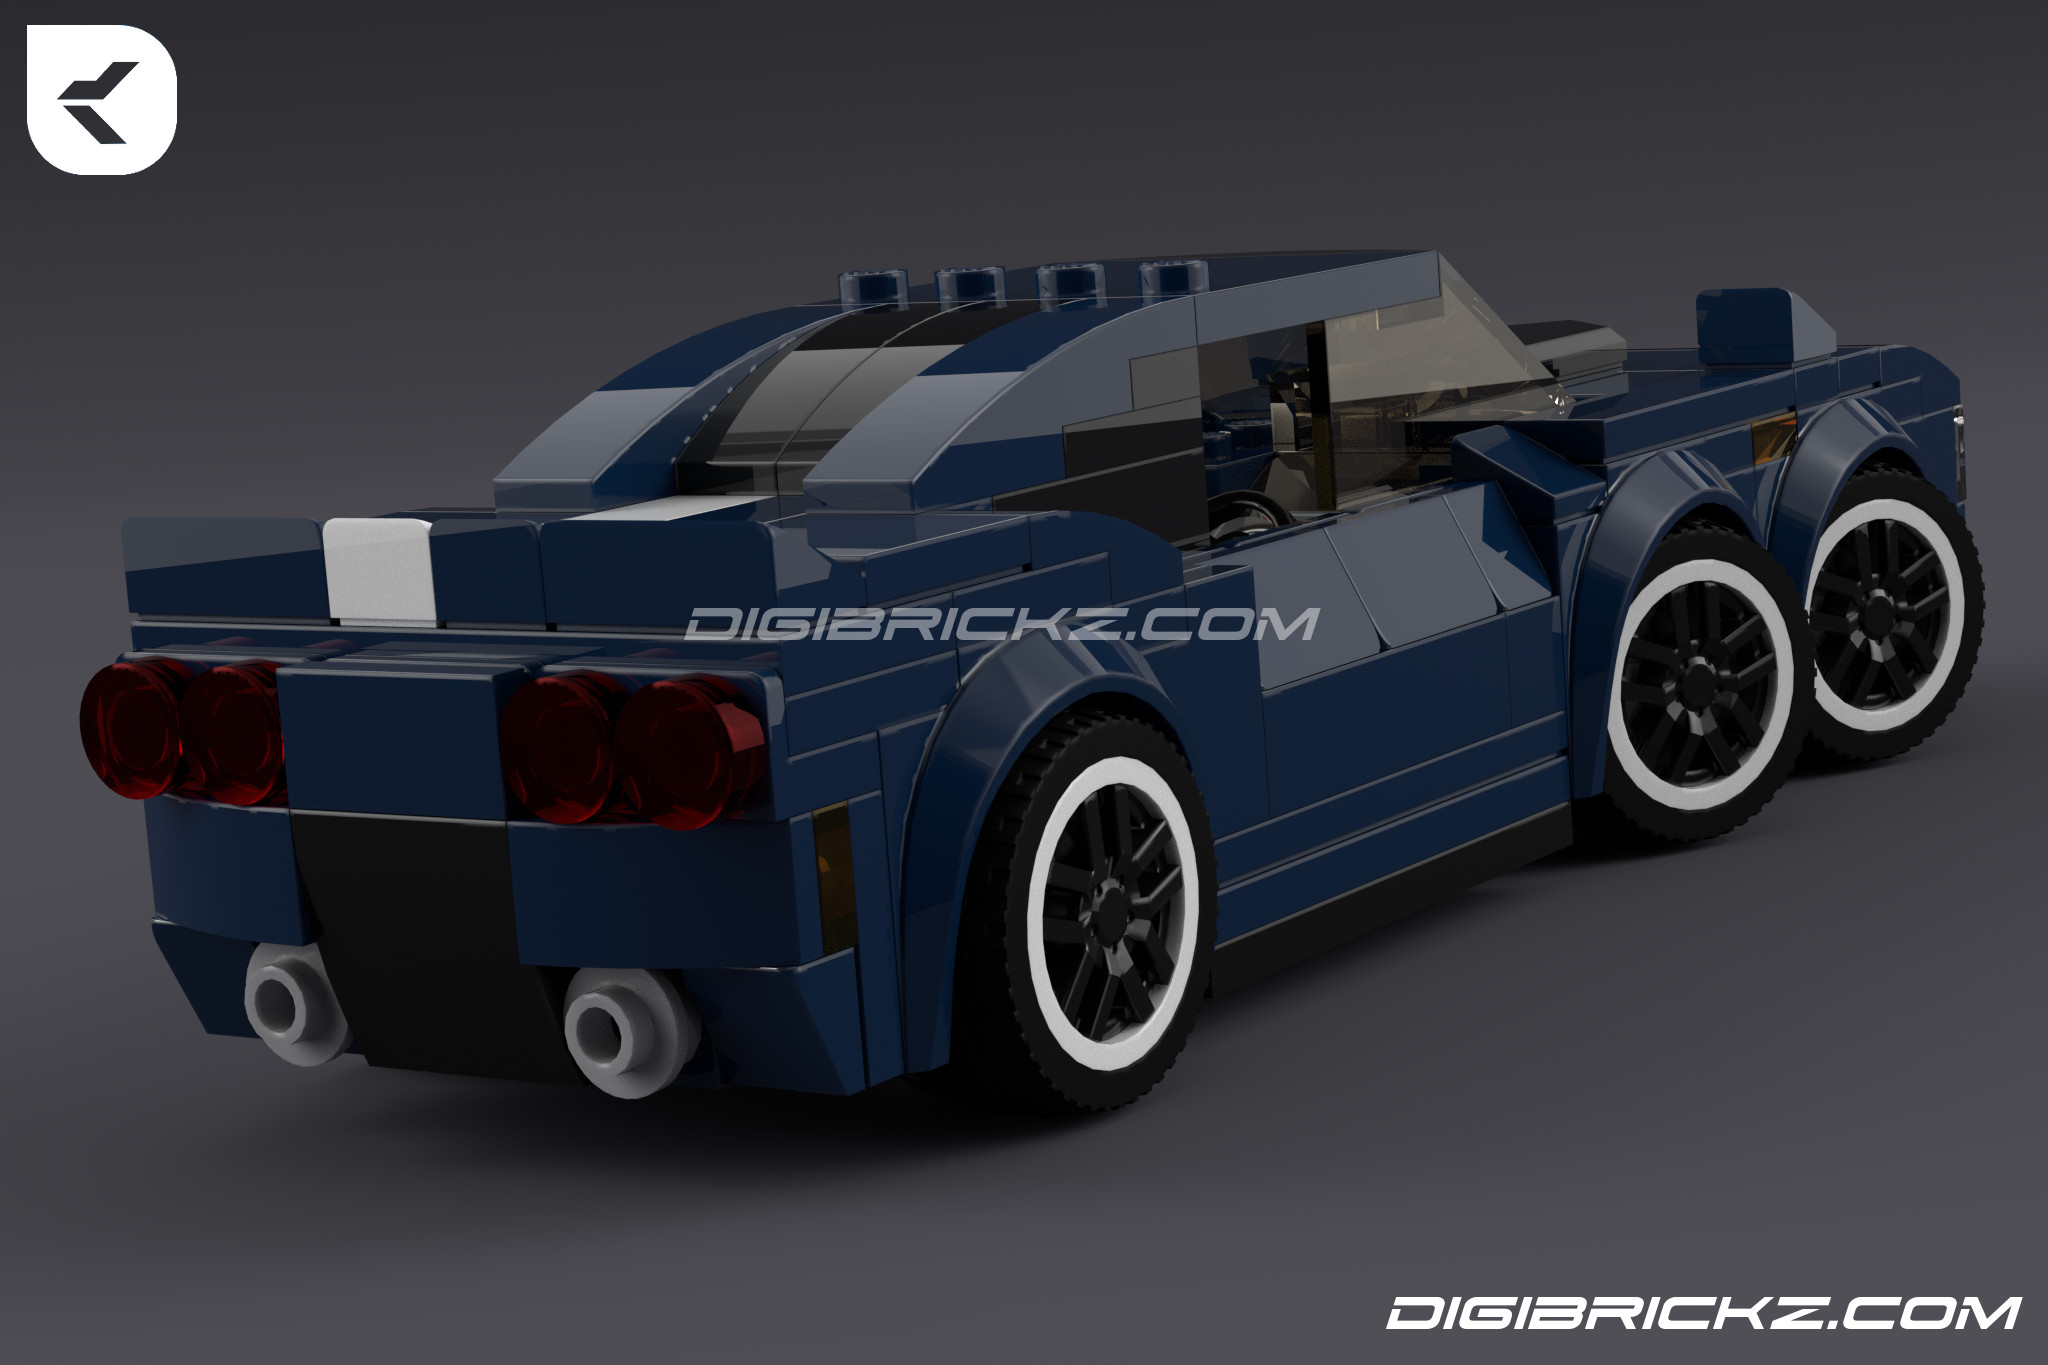 LEGO T6W-MC: The 6 Wheeled Muscle Car by Kamal Muftie Yafi (KamalMYafi/Kamteey) | DigiBrickz.com